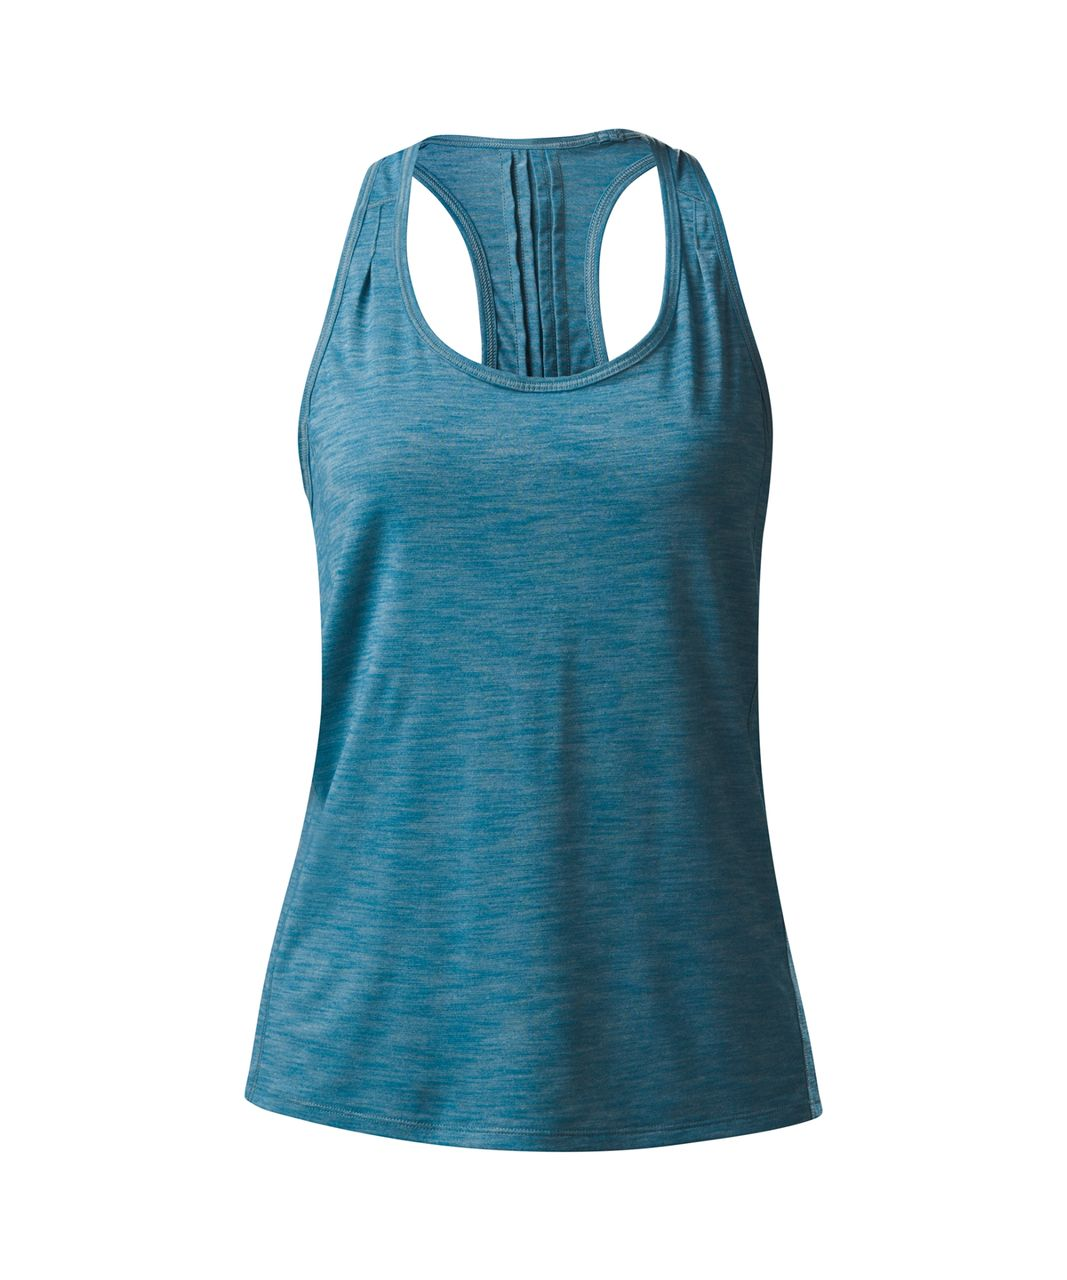 Lululemon Hotwave Tank - Heathered Tofino Teal